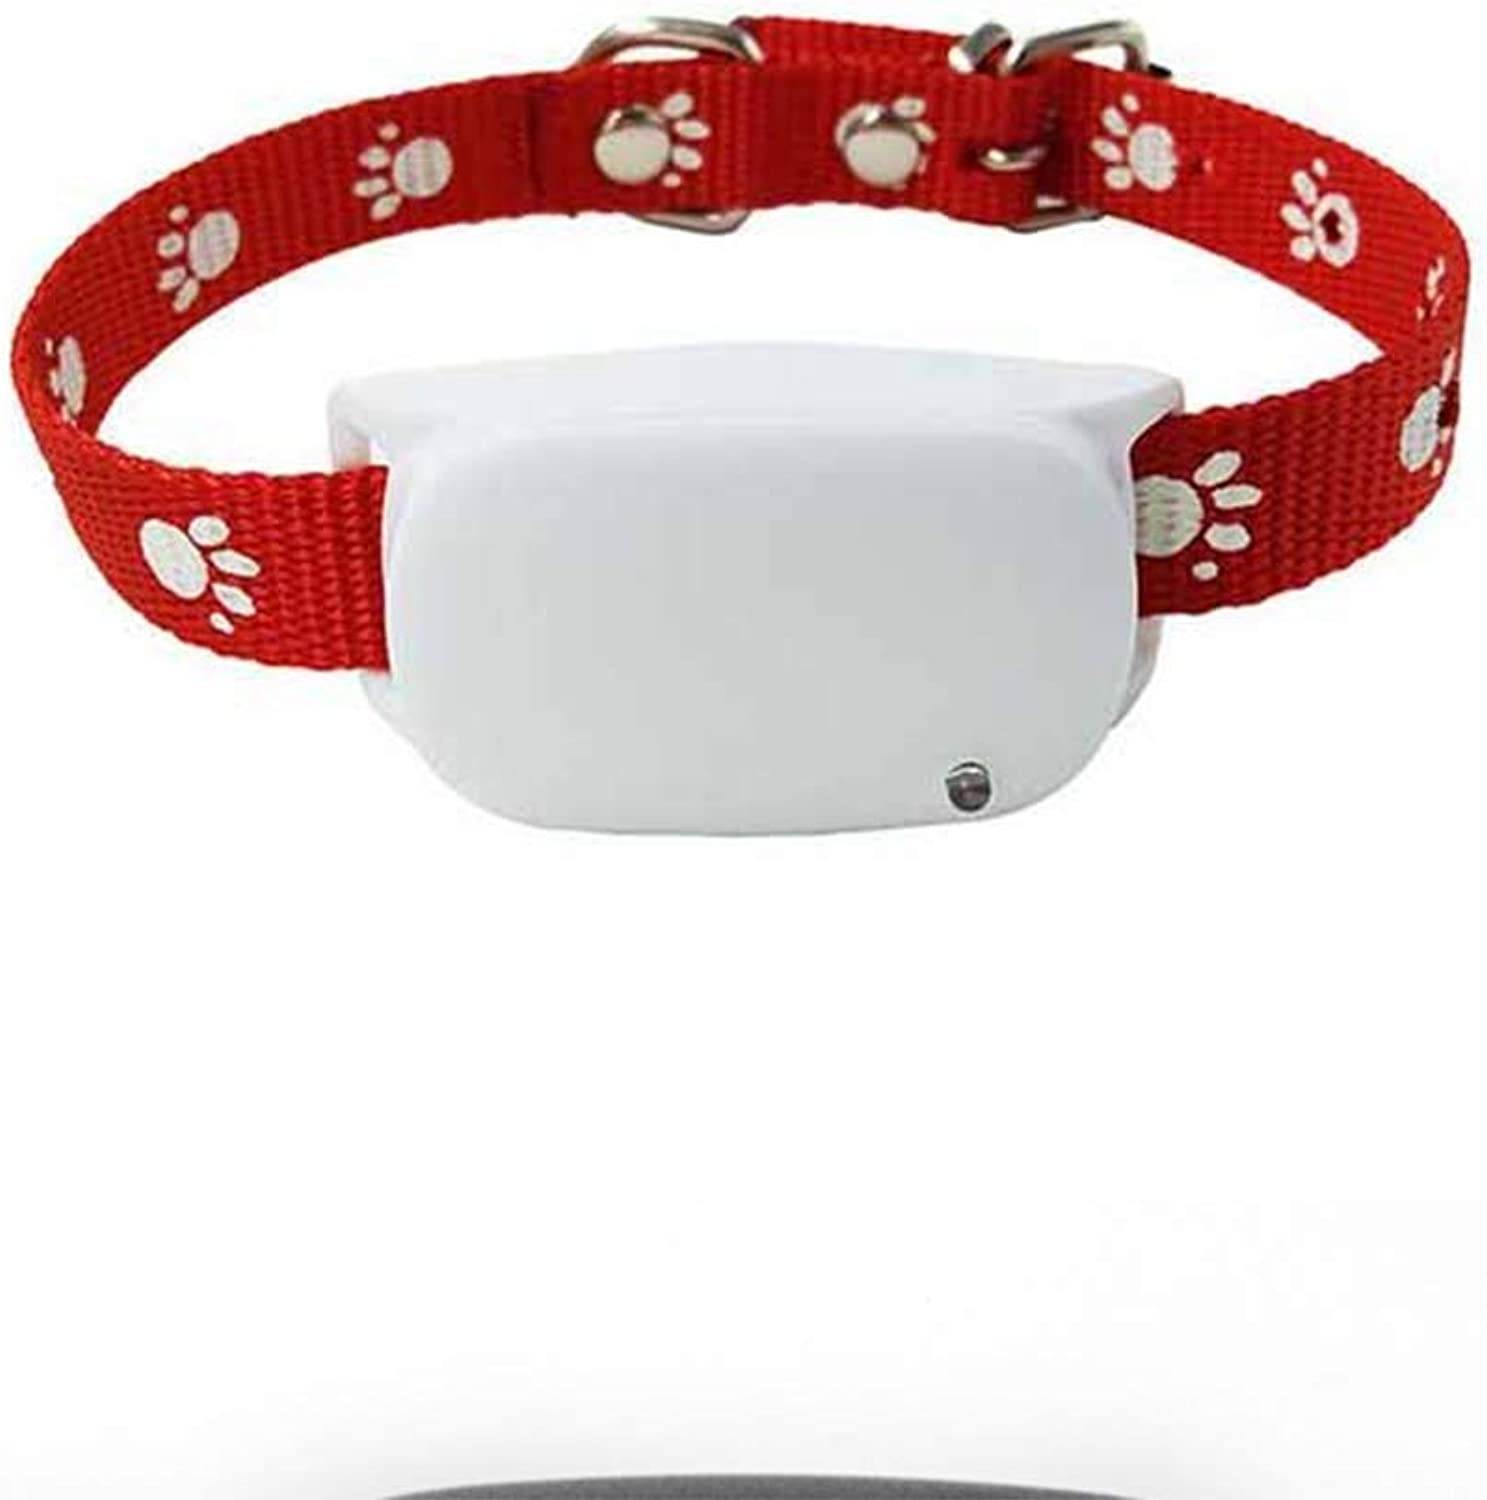 Pet Locator GPS Tracker Dog Locator AntiLost Smart pet GPS Collar Tracker for Pets, AntiLost, Locator, geofence,White